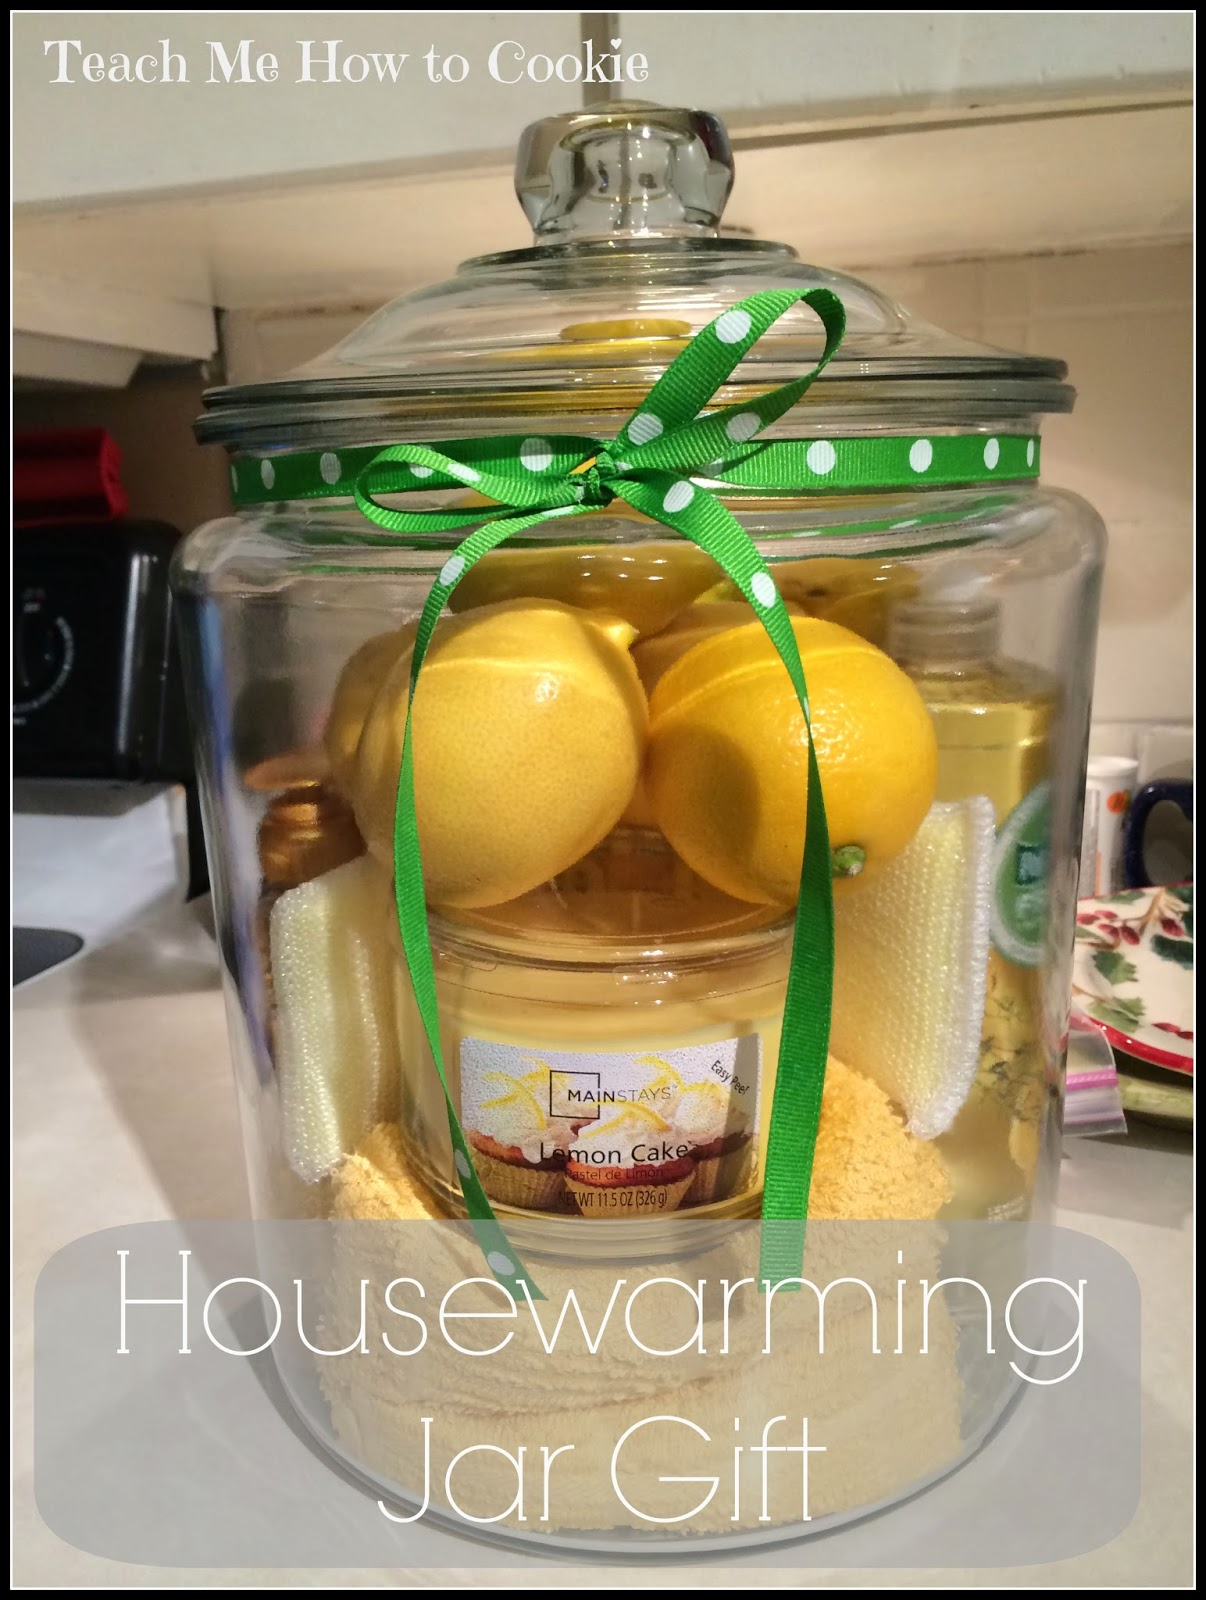 Teach me how to cookie diy house warming gift for What to buy for housewarming gift